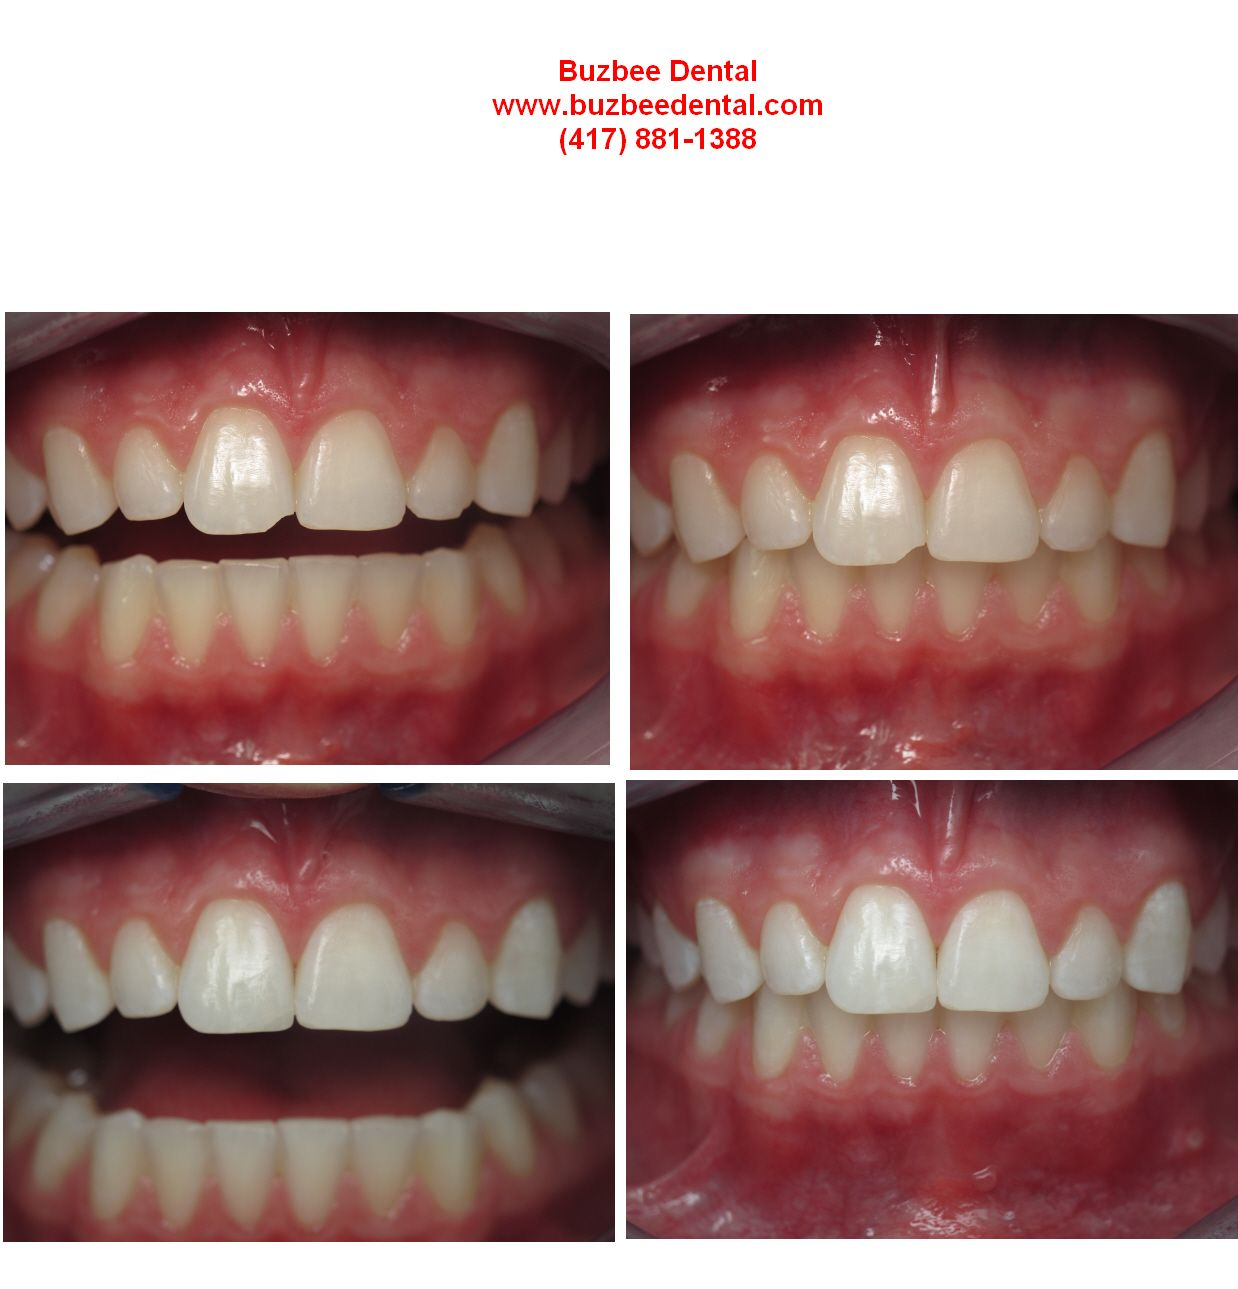 We Fixed The Chip On The Right Front Tooth 8 And Also Fixed The Minor Chips On The Patient S Left Lateral Toot Front Teeth Teeth Before And After Pictures